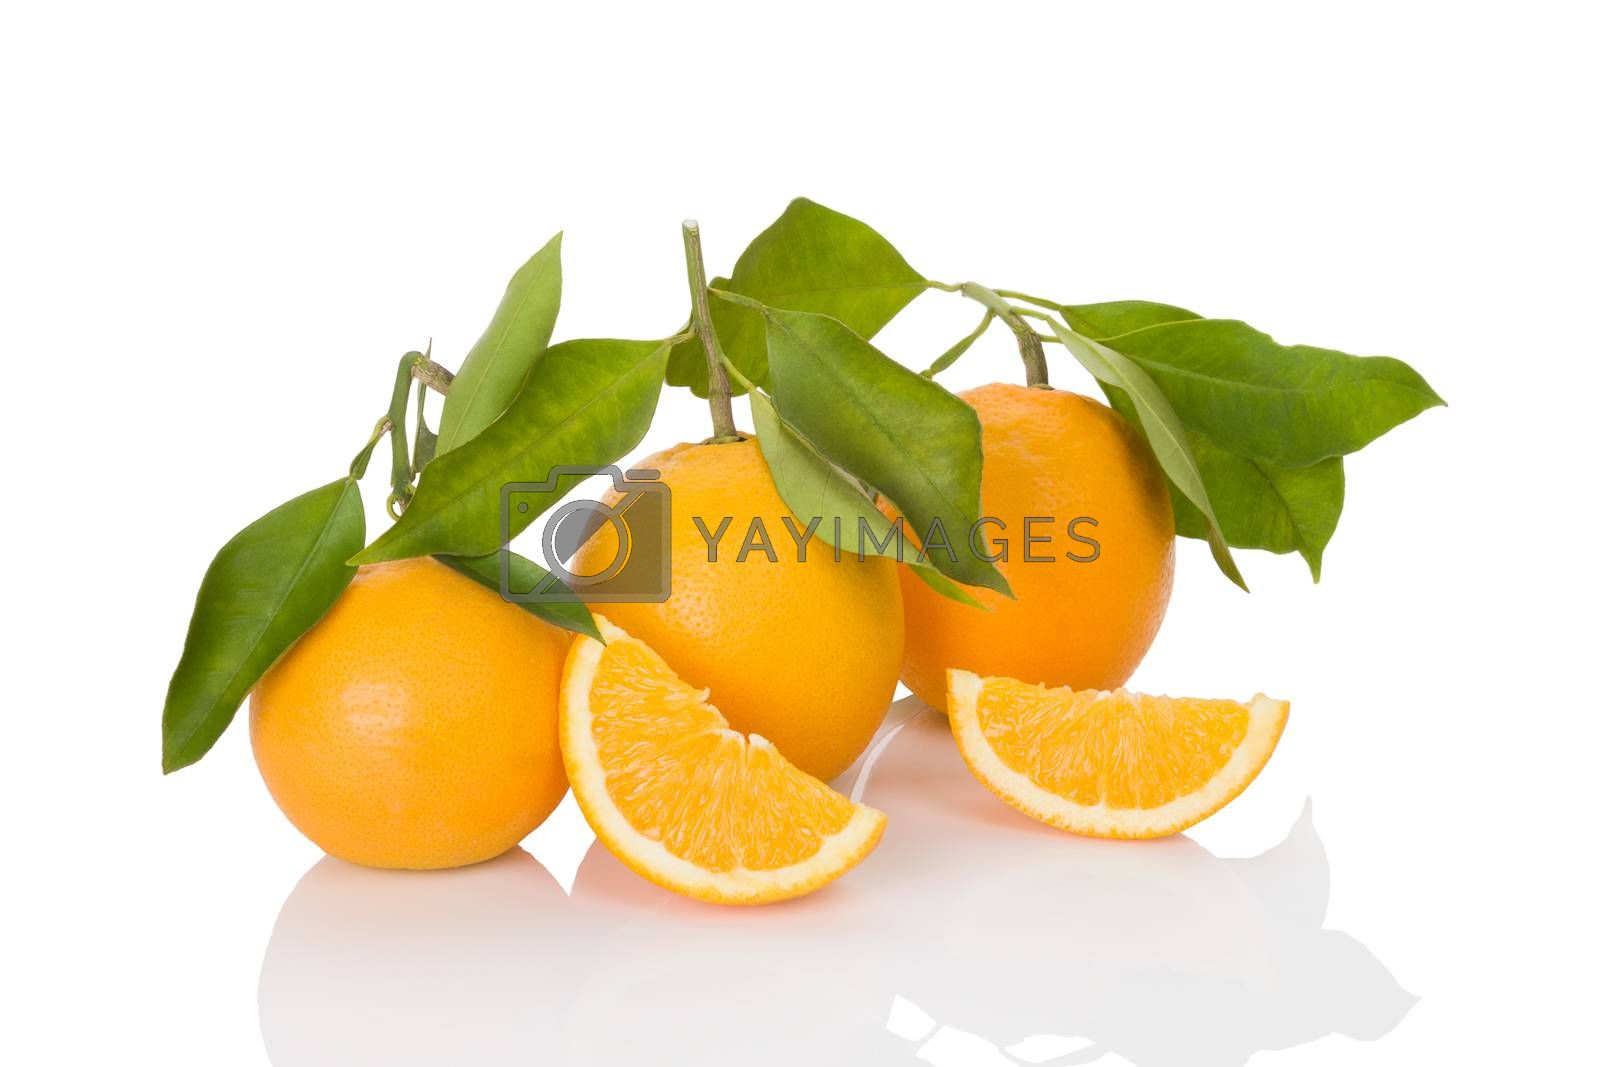 Delicious whole oranges with leaves and slices isolated on white background. Healthy fruit eating.